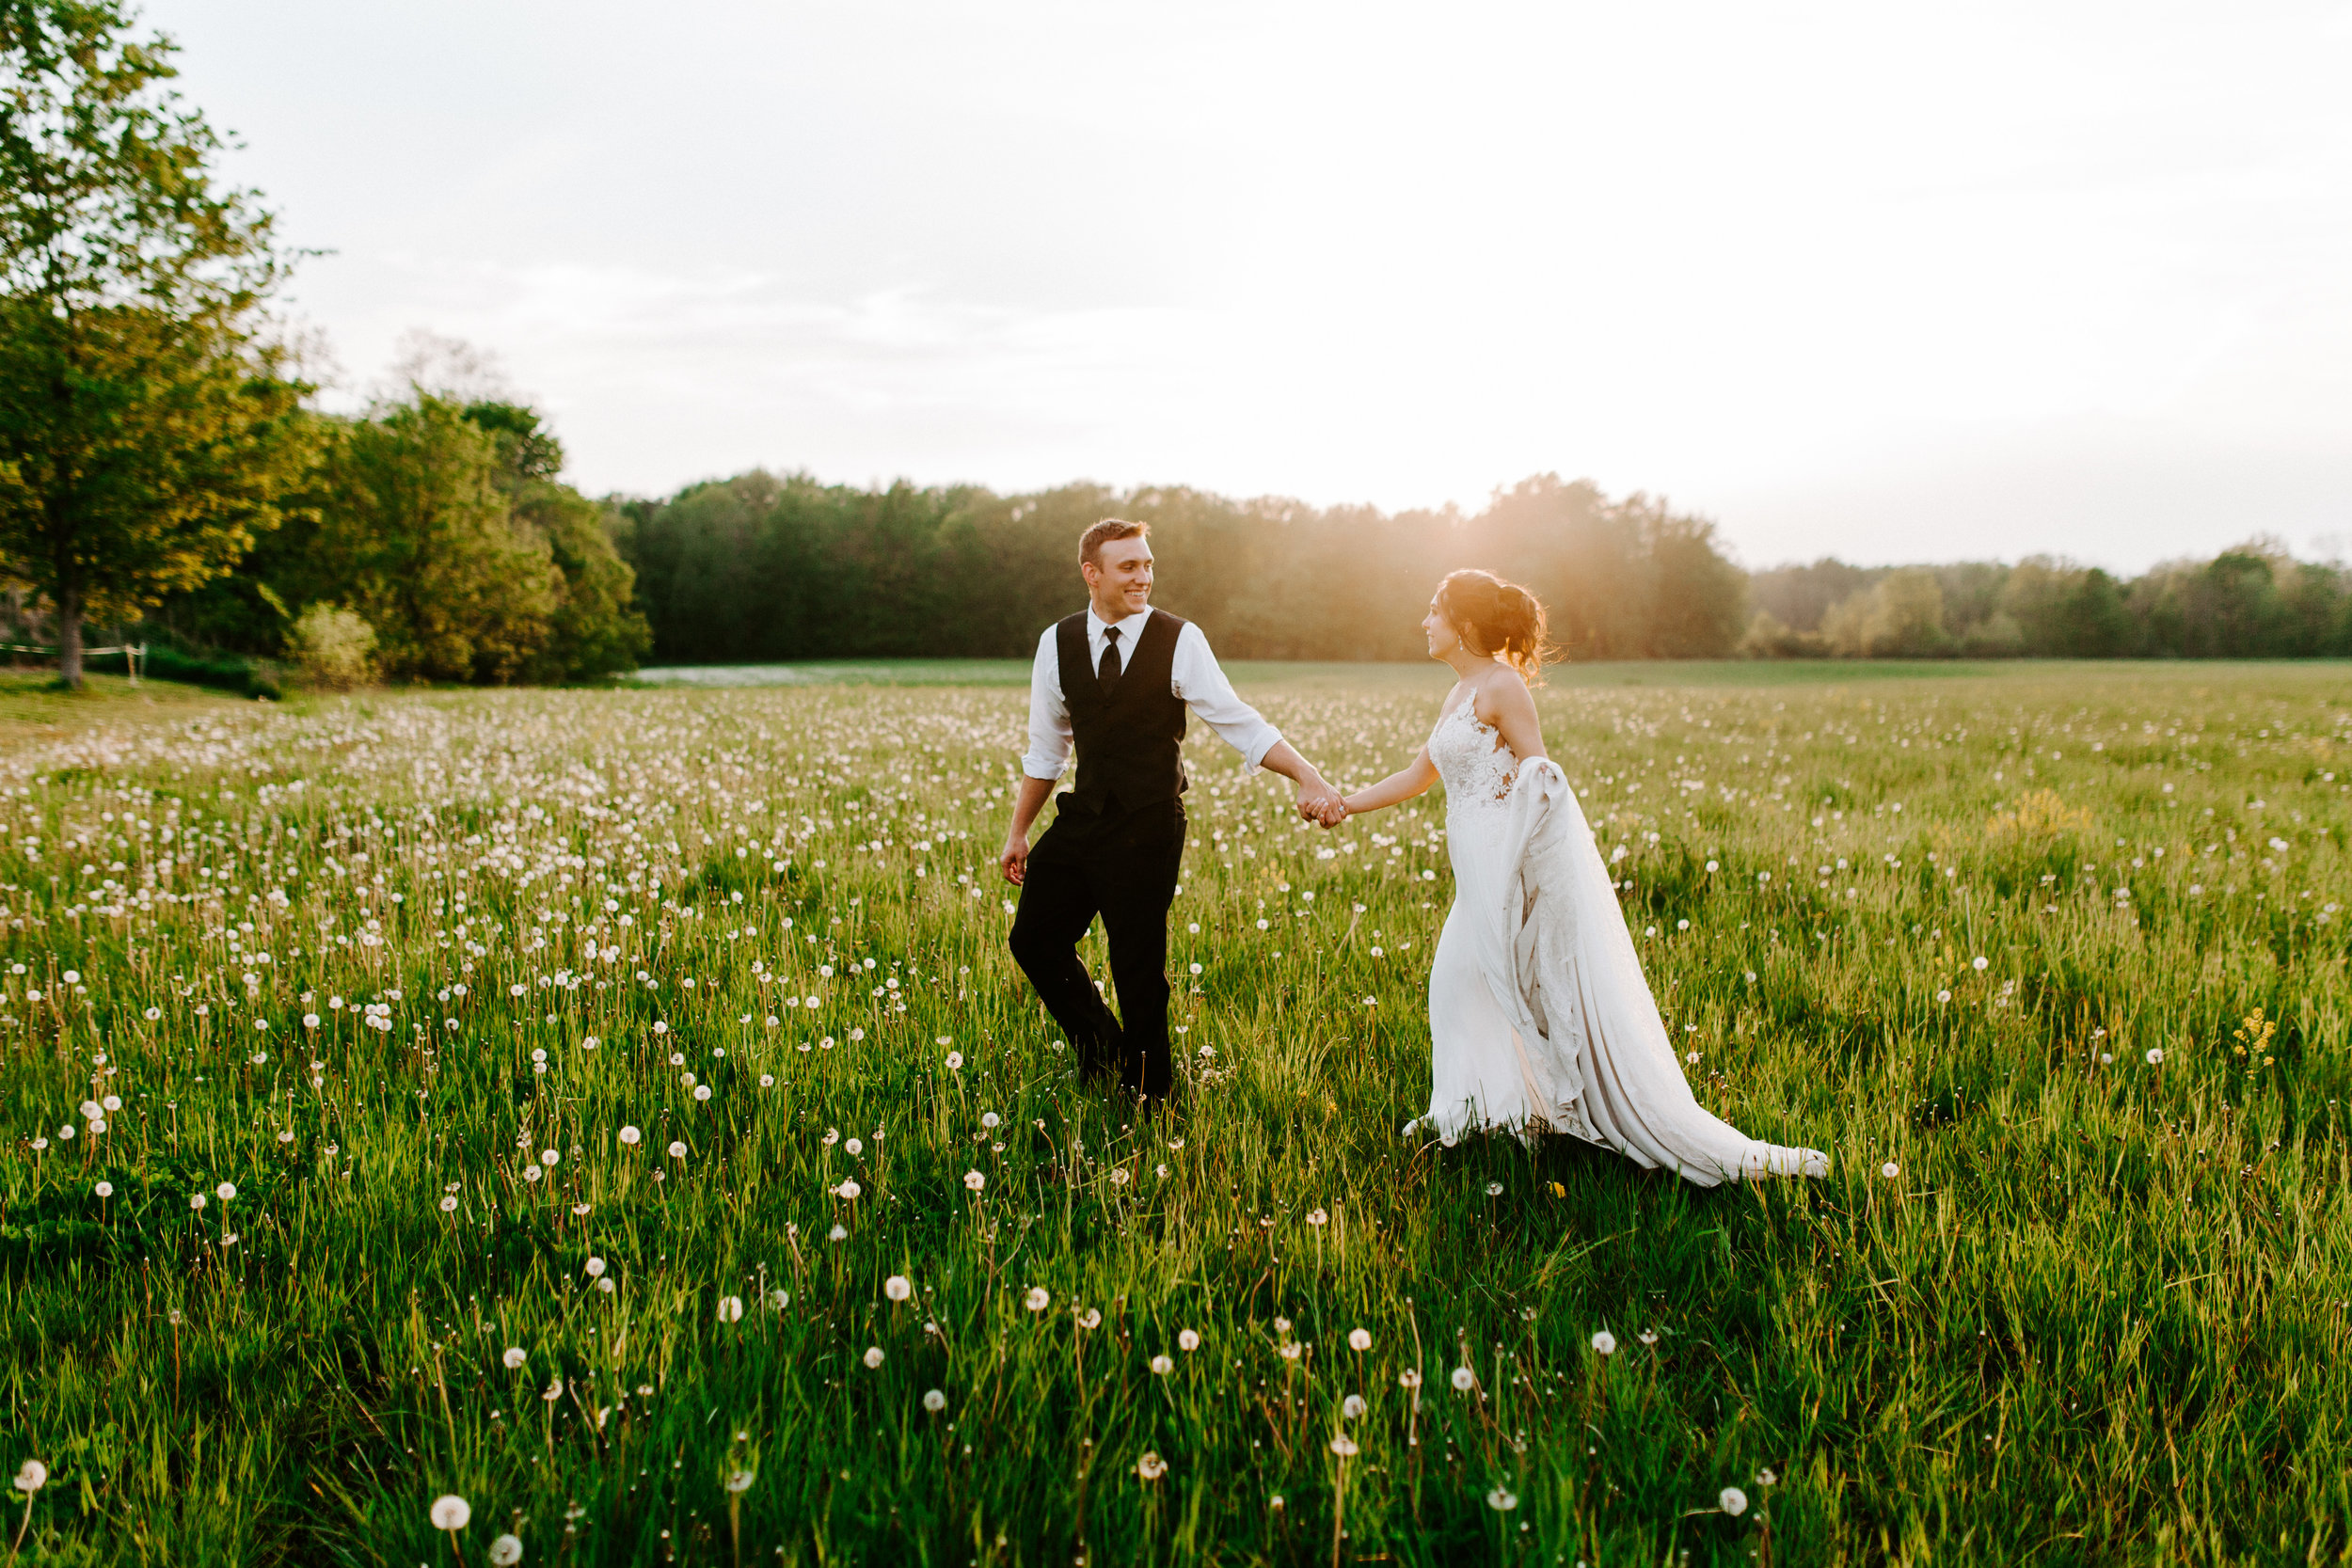 An Irish Hills wedding in Southern Michigan full of charm, Ray and MacKenzie's wedding included a unique stop to the Michigan International Speedway to revisit where the bride and groom first met.